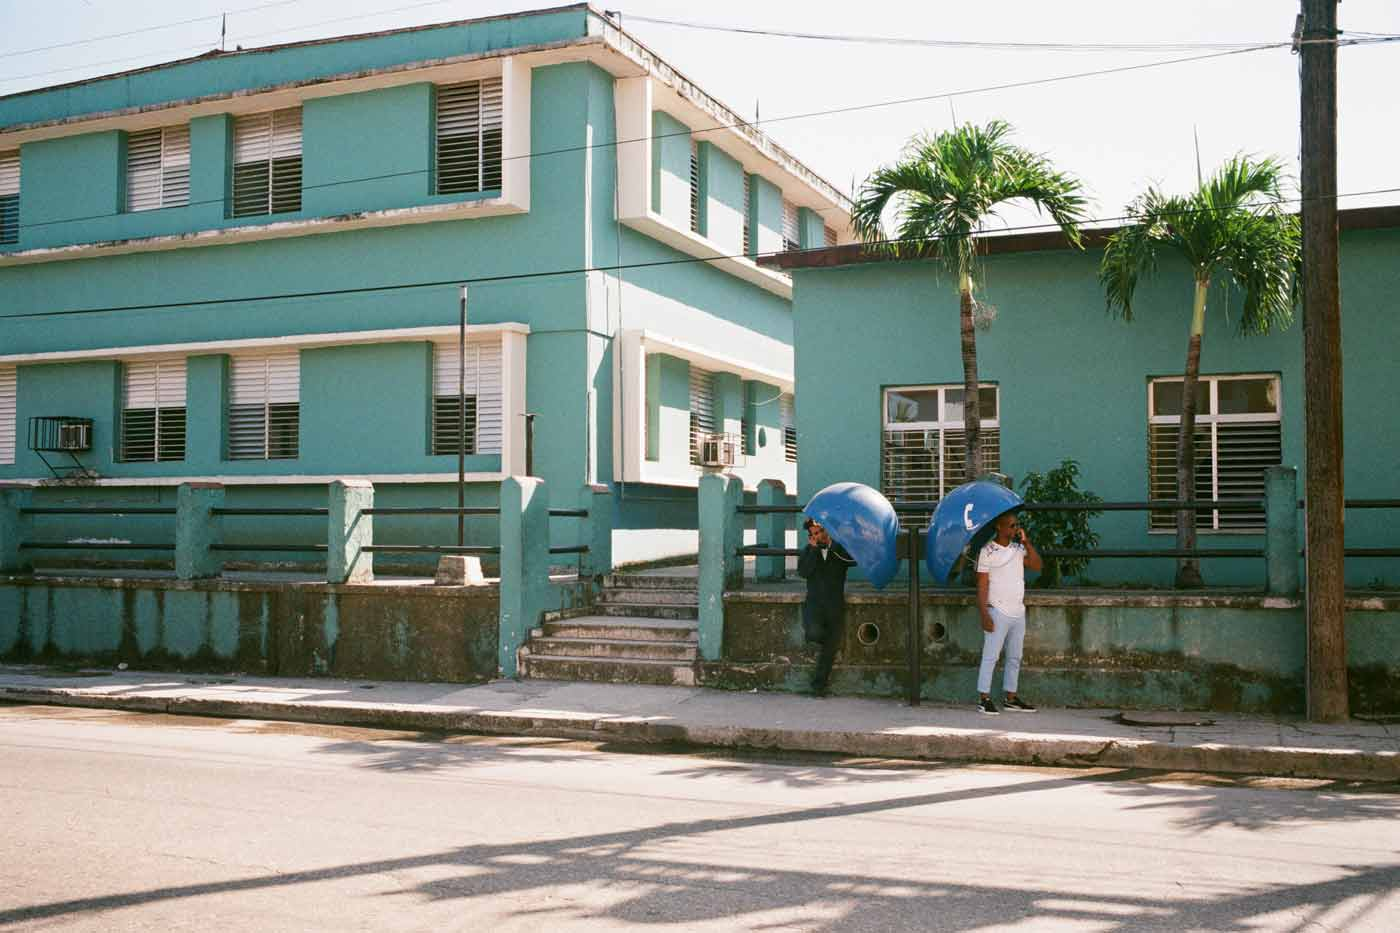 35mm-focal-length-guide-tips-beginner-documentary-story-telling-zone-focus-field-view-perspective-compression-angle-summilux-cuba-havana-film-photography-telephone-booth